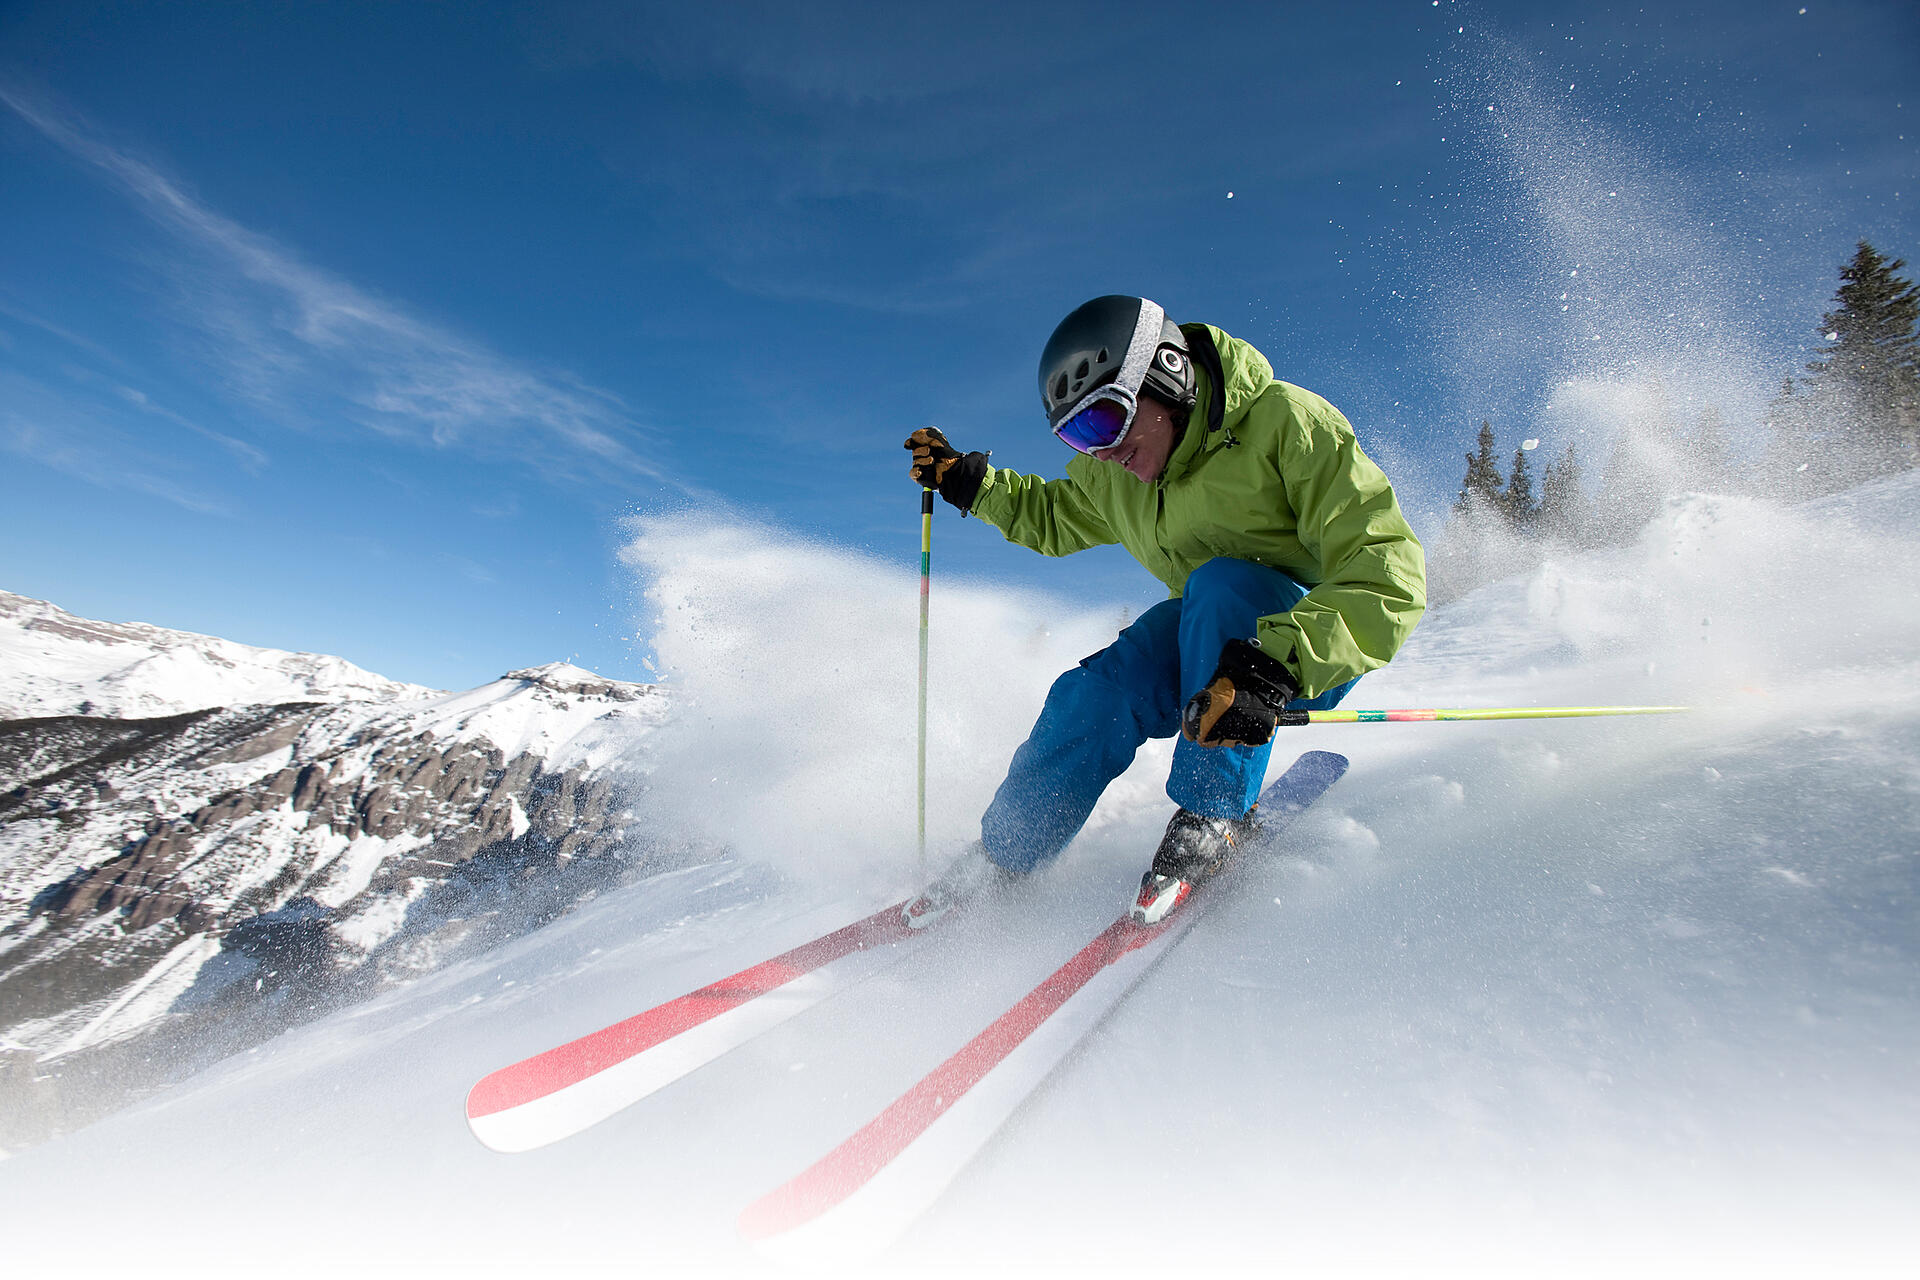 Skiing with polarized sport sunglasses